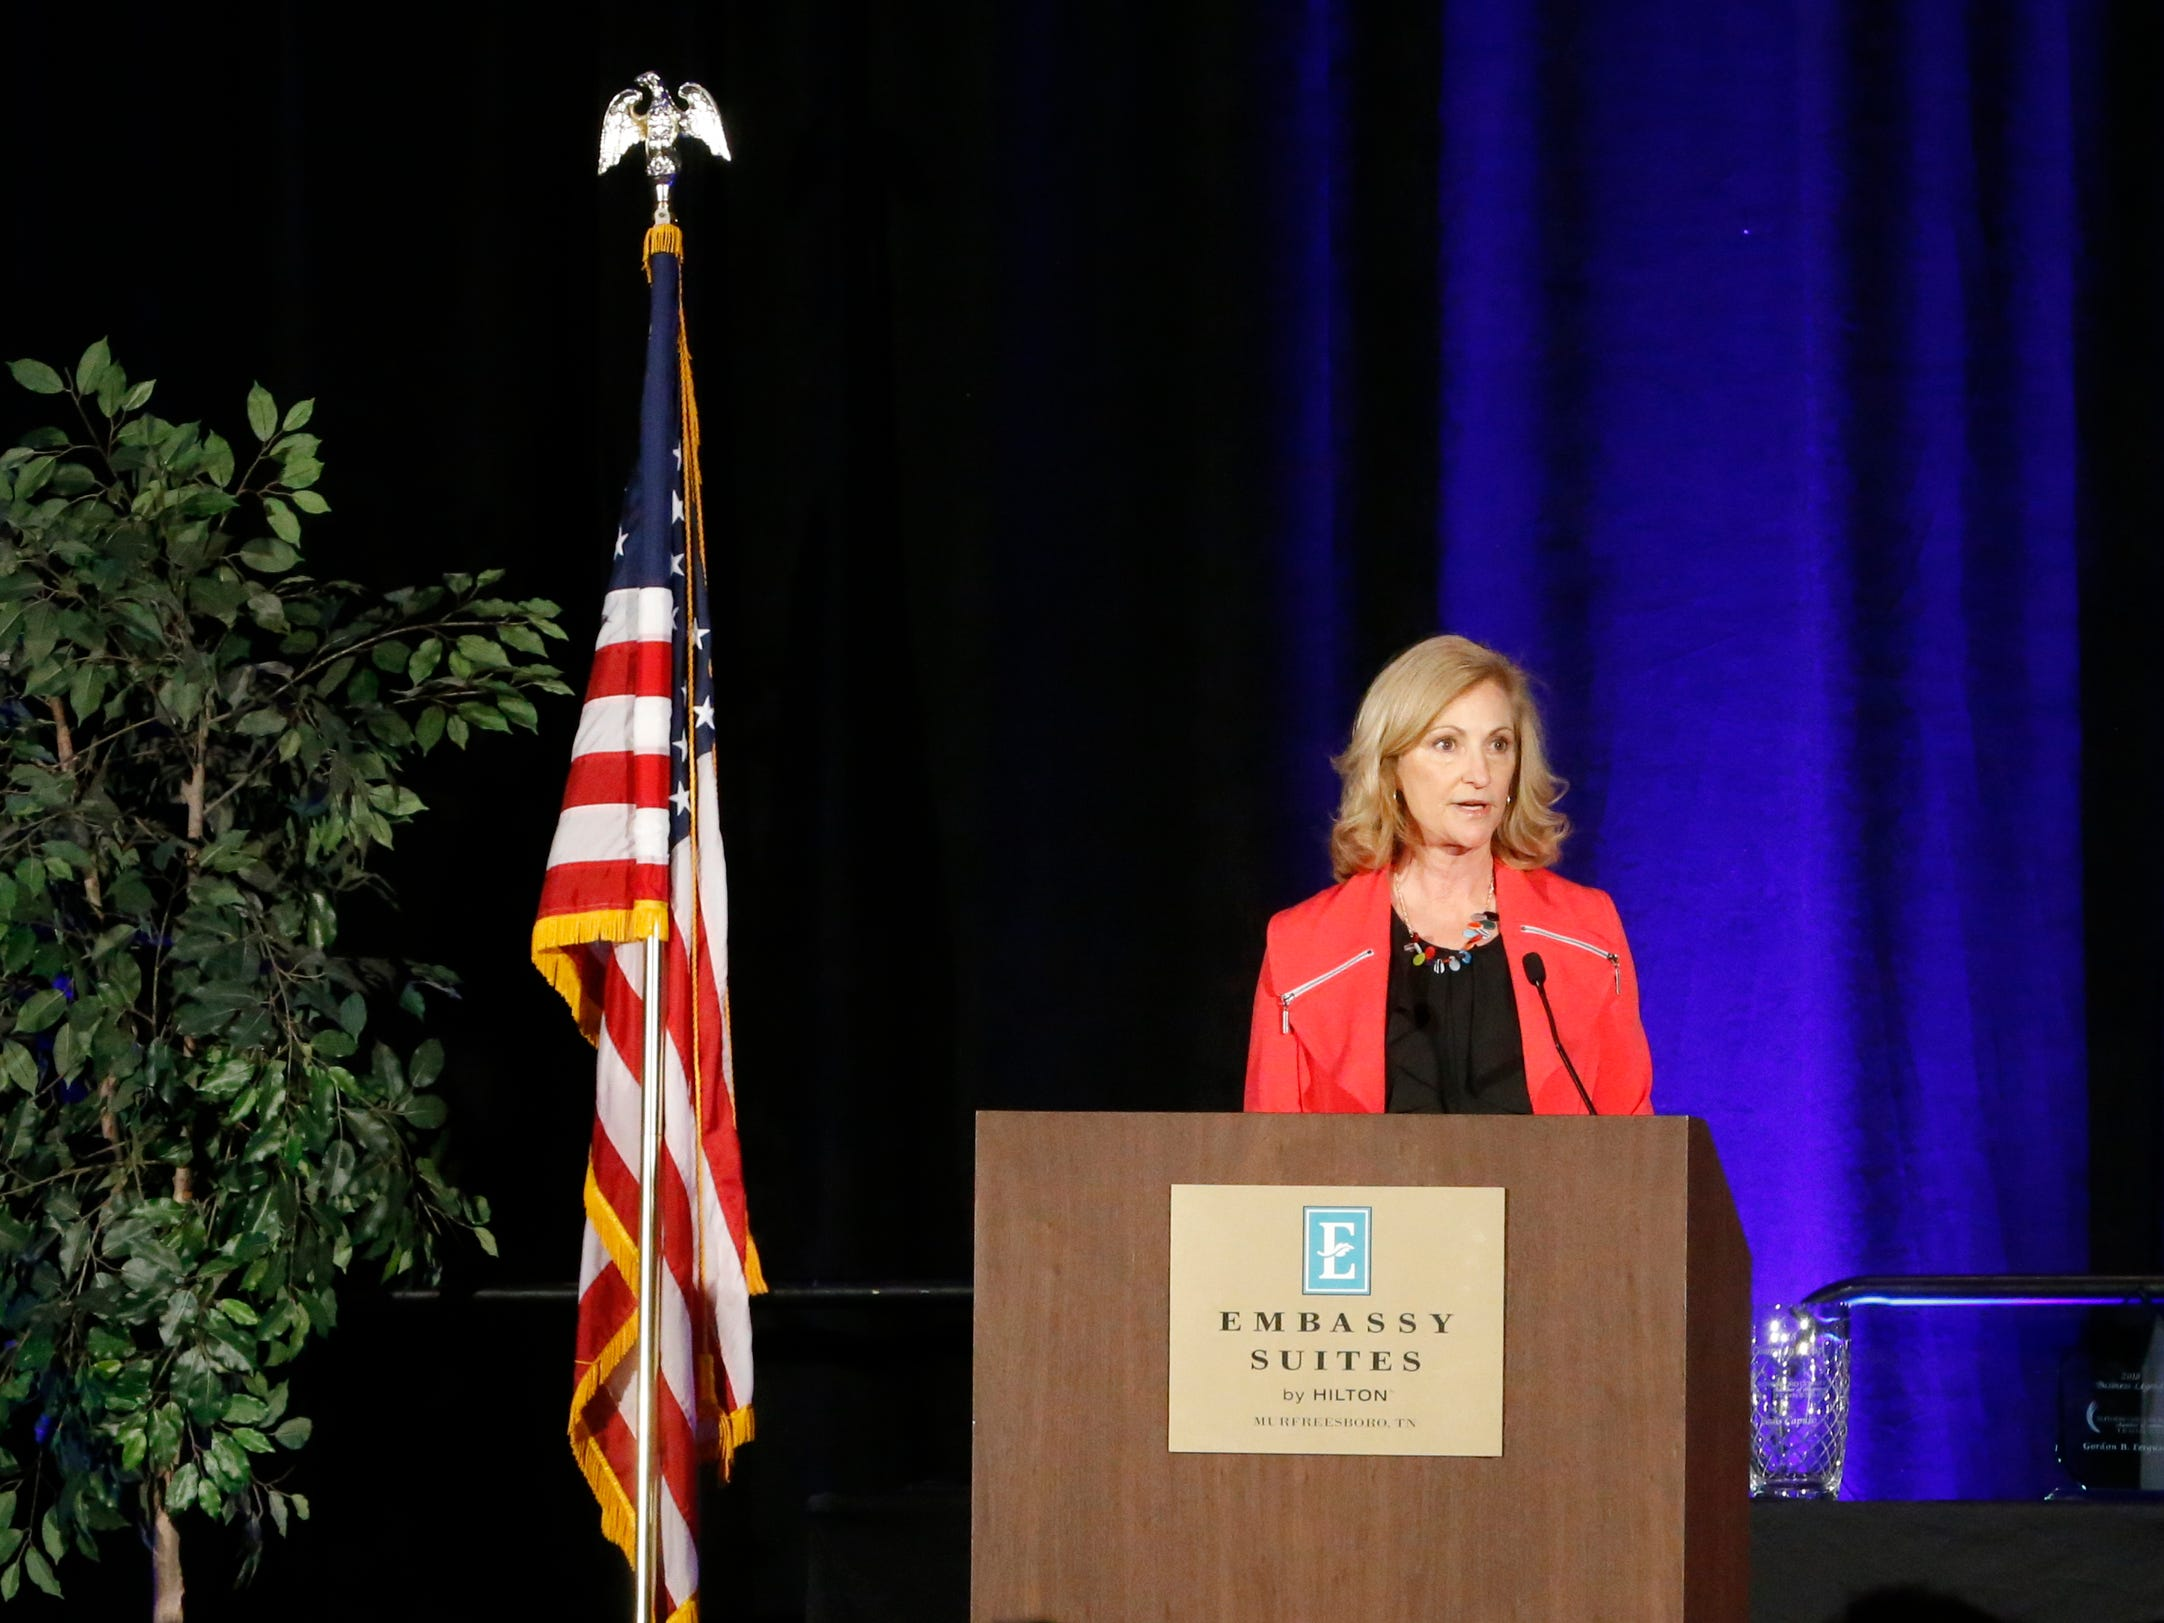 Holli Montgomery addresses the crowd at Business at Its Best was held on Wednesday, Jan. 31, 2019 at Embassy Suites.